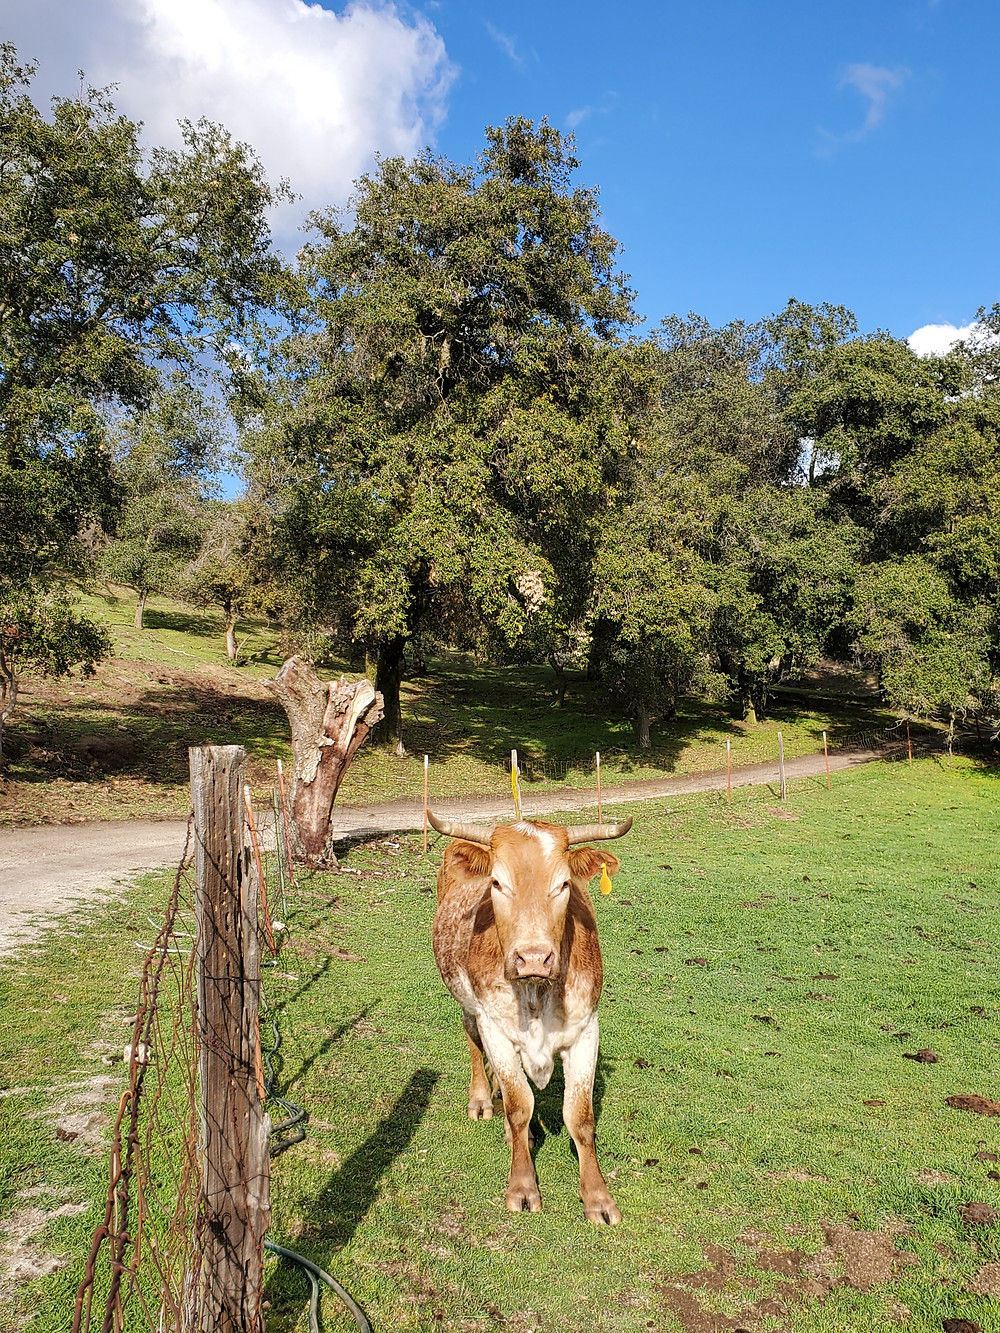 Bull in San Diego County ranching country.